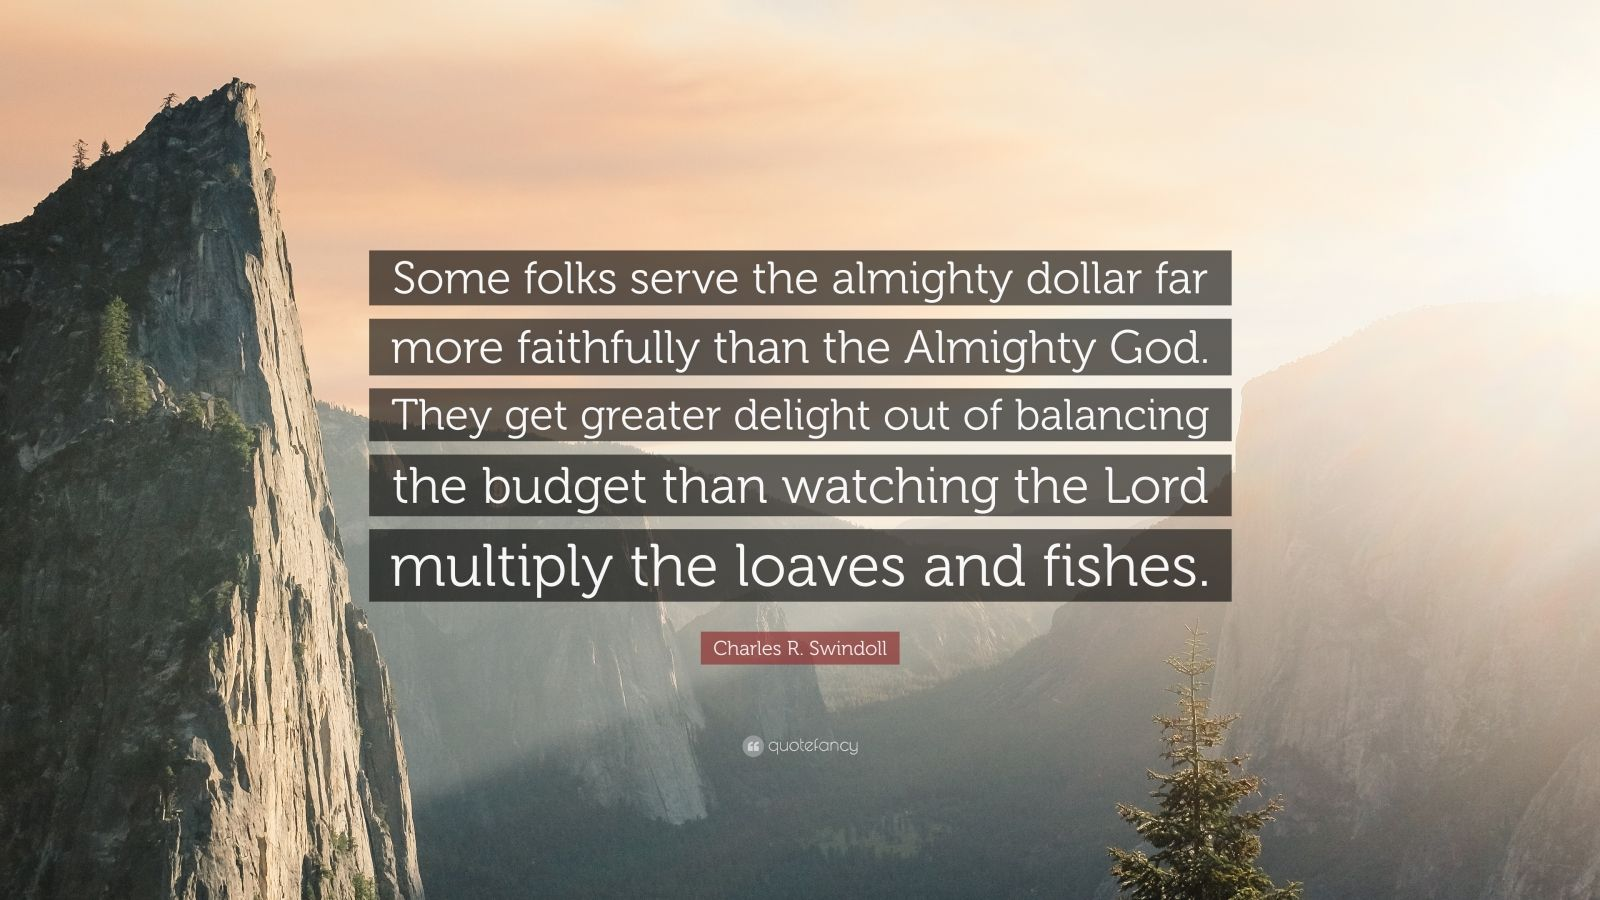 """Charles R. Swindoll Quote: """"Some folks serve the almighty dollar far more faithfully than the Almighty God. They get greater delight out of balancing the budget than watching the Lord multiply the loaves and fishes."""""""